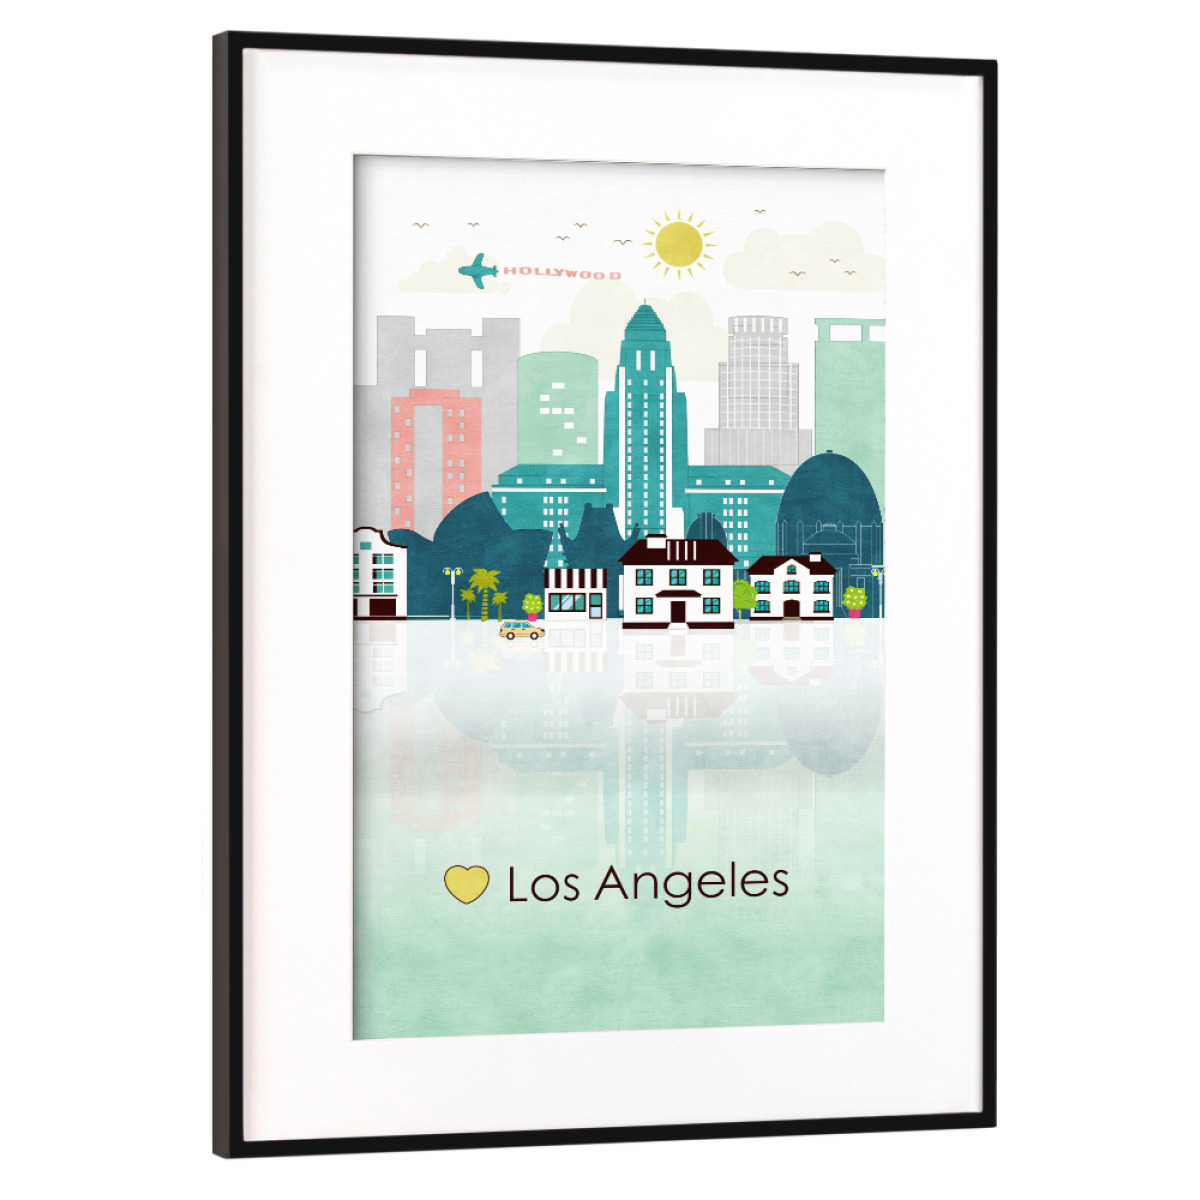 Purchase the Los Angeles Skyline as a Frame at artboxONE